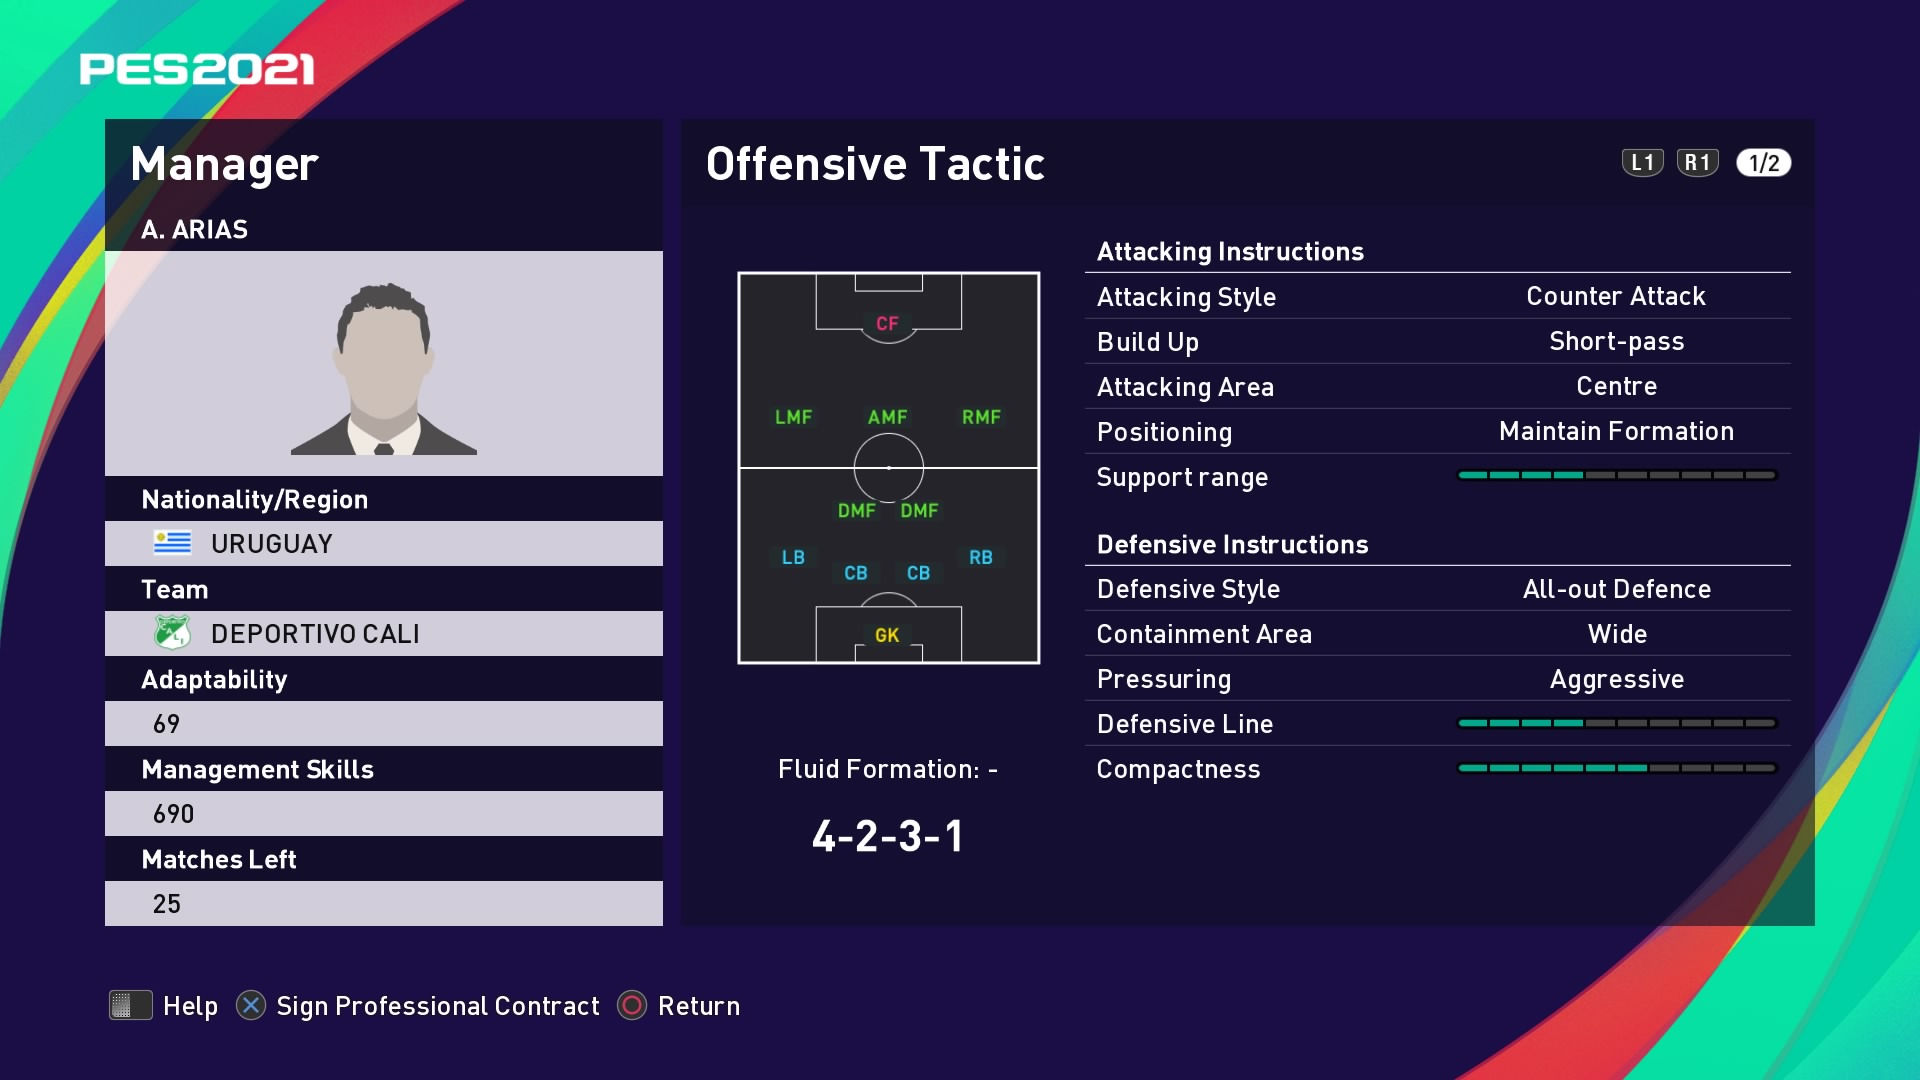 A. Arias (Alfredo Arias) Offensive Tactic in PES 2021 myClub